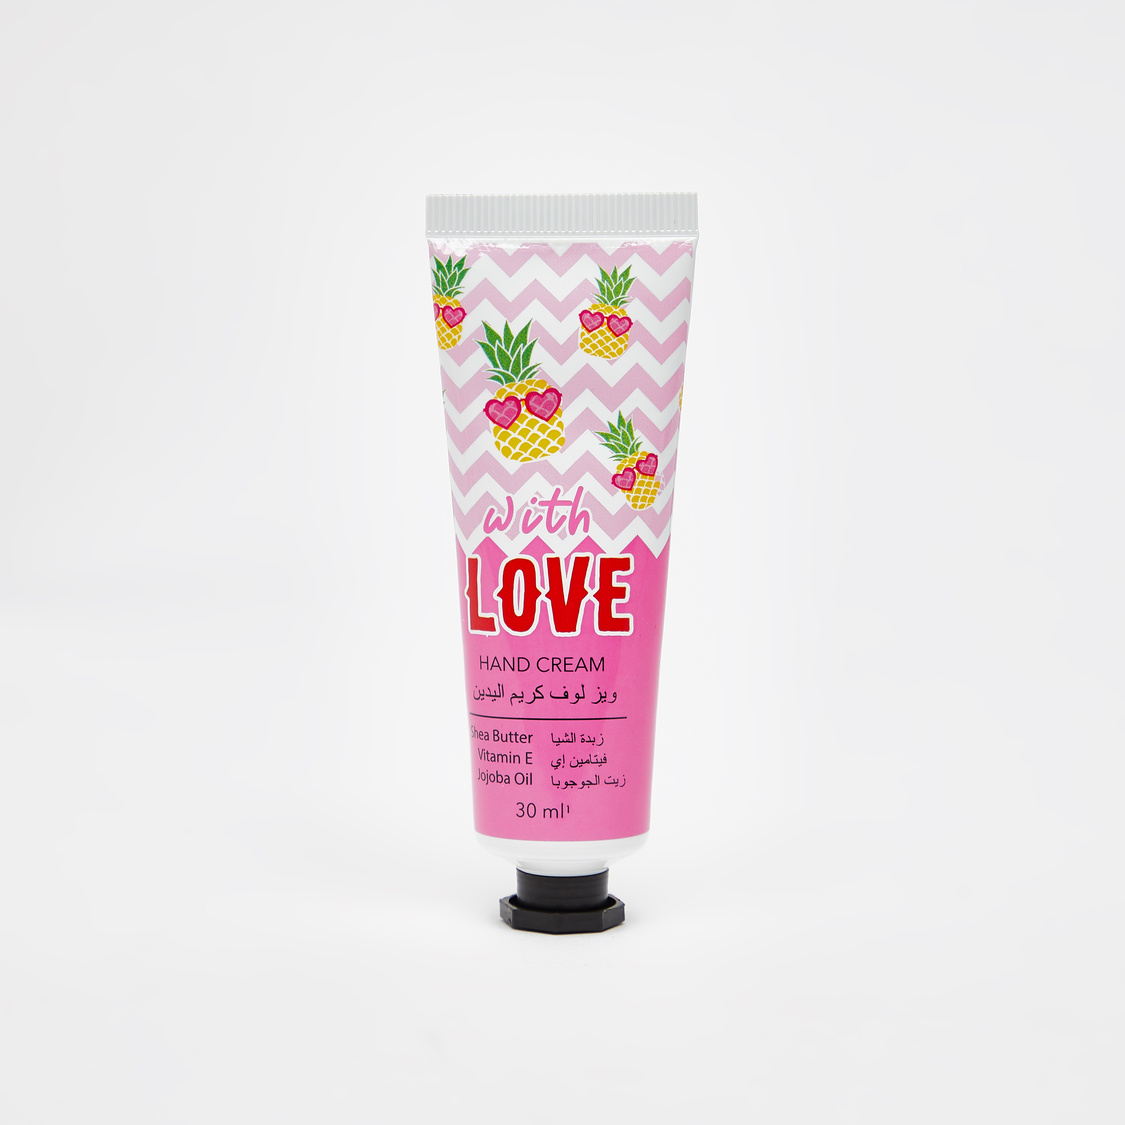 With Love Hand Cream - 30 ml